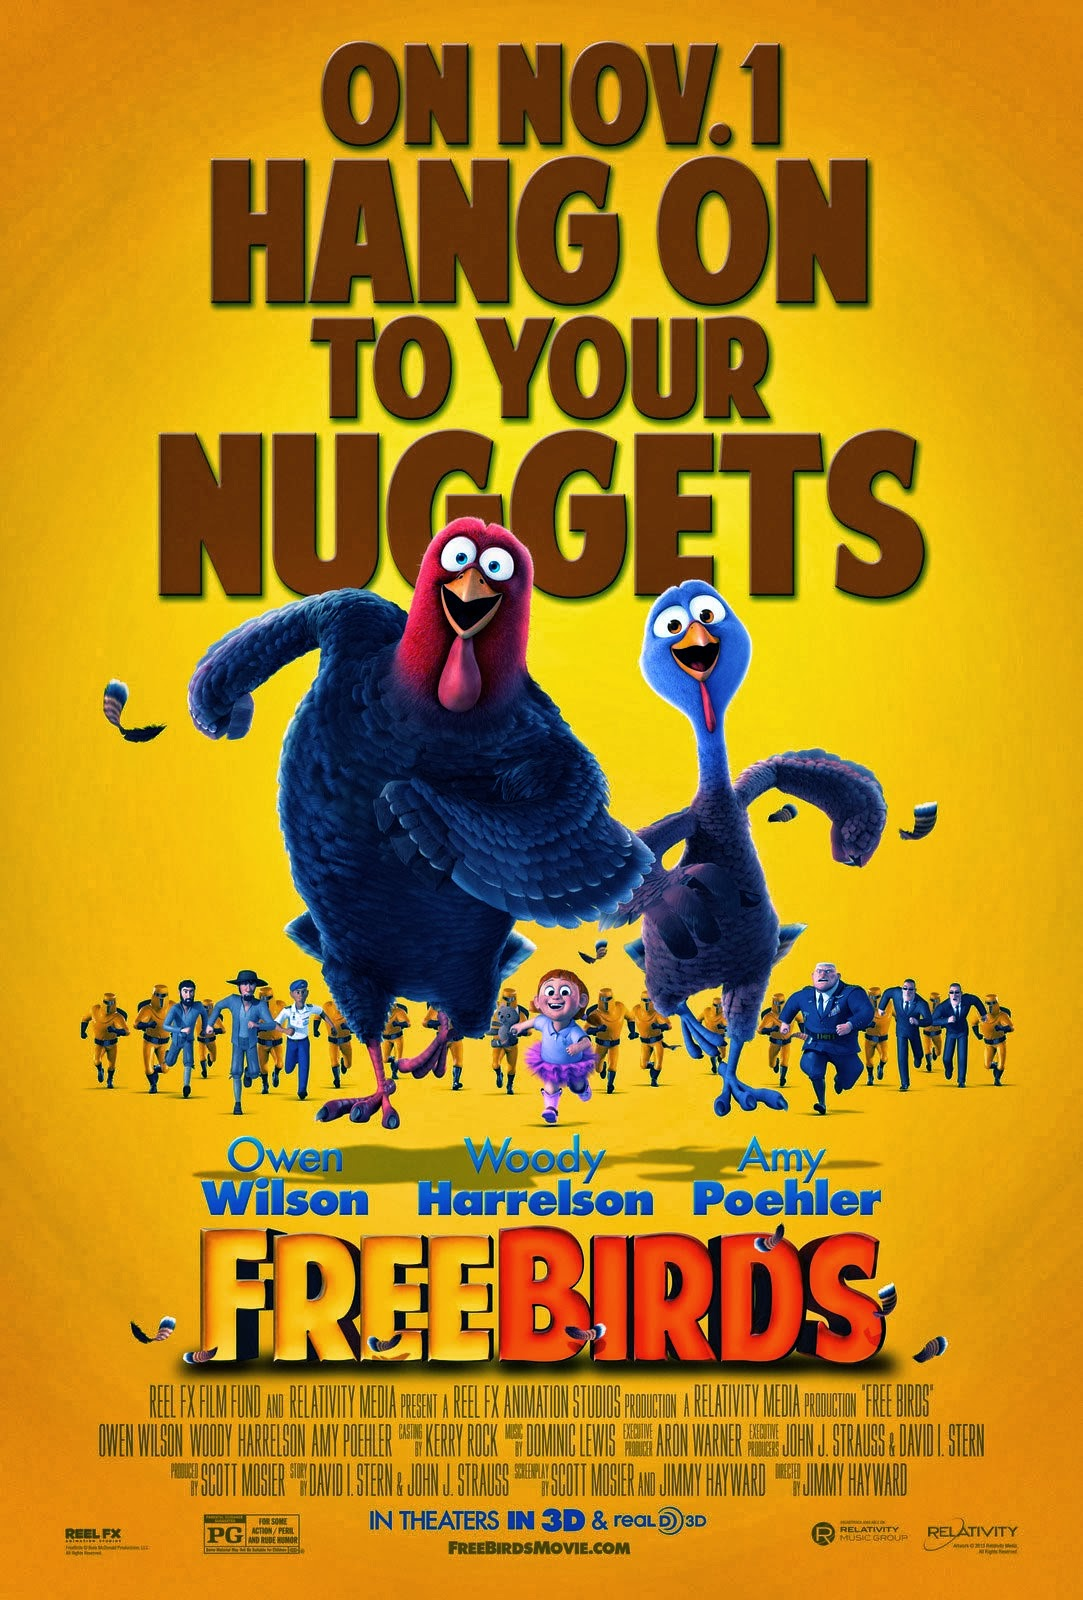 Free Birds Movie Poster 2013 Images & Pictures - Becuo